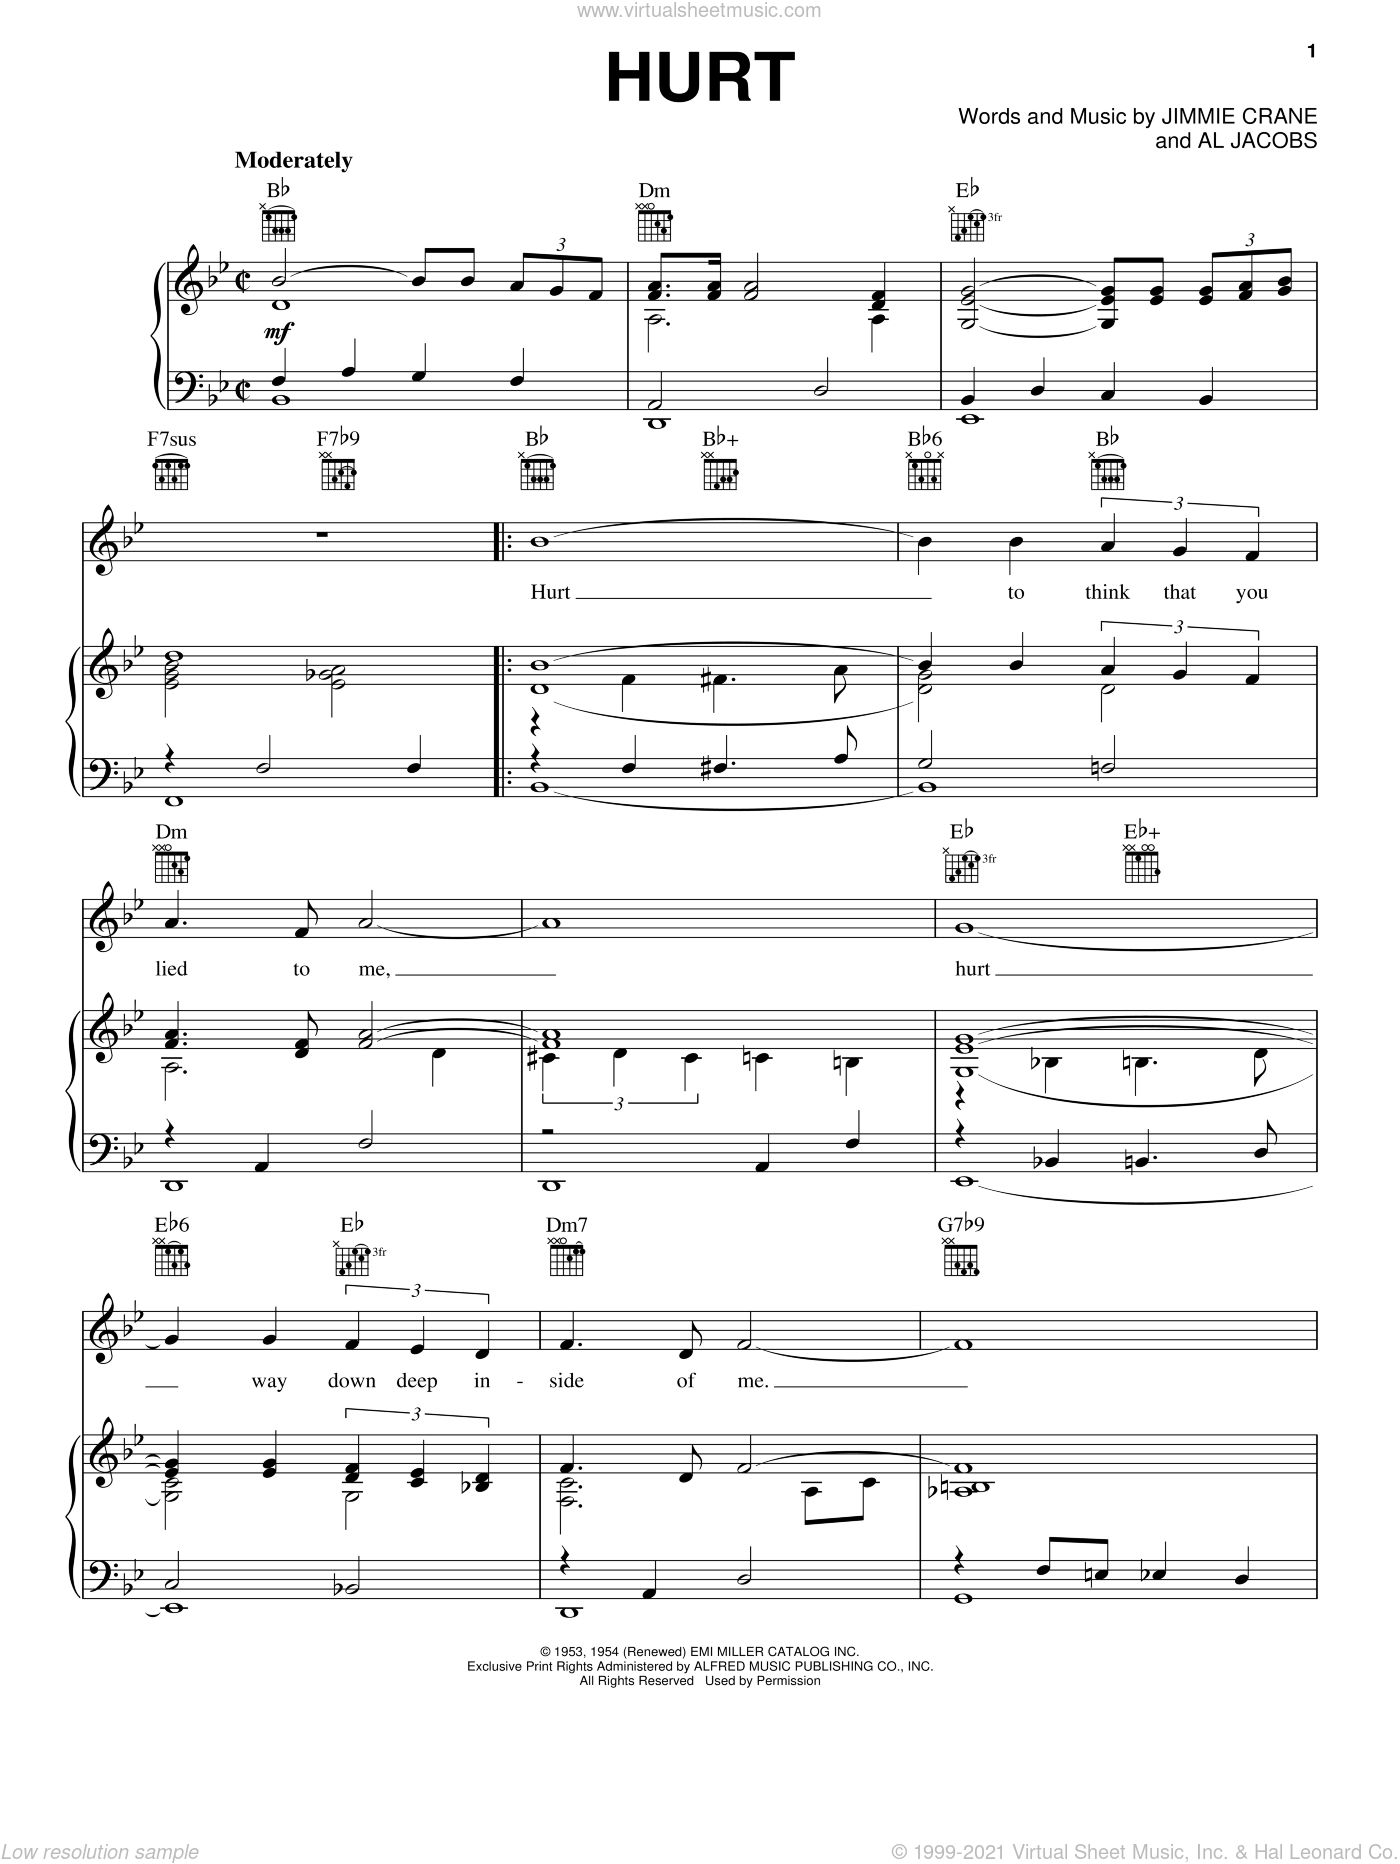 Hurt sheet music for voice, piano or guitar by Elvis Presley, Al Jacobs and Jimmie Crane, intermediate